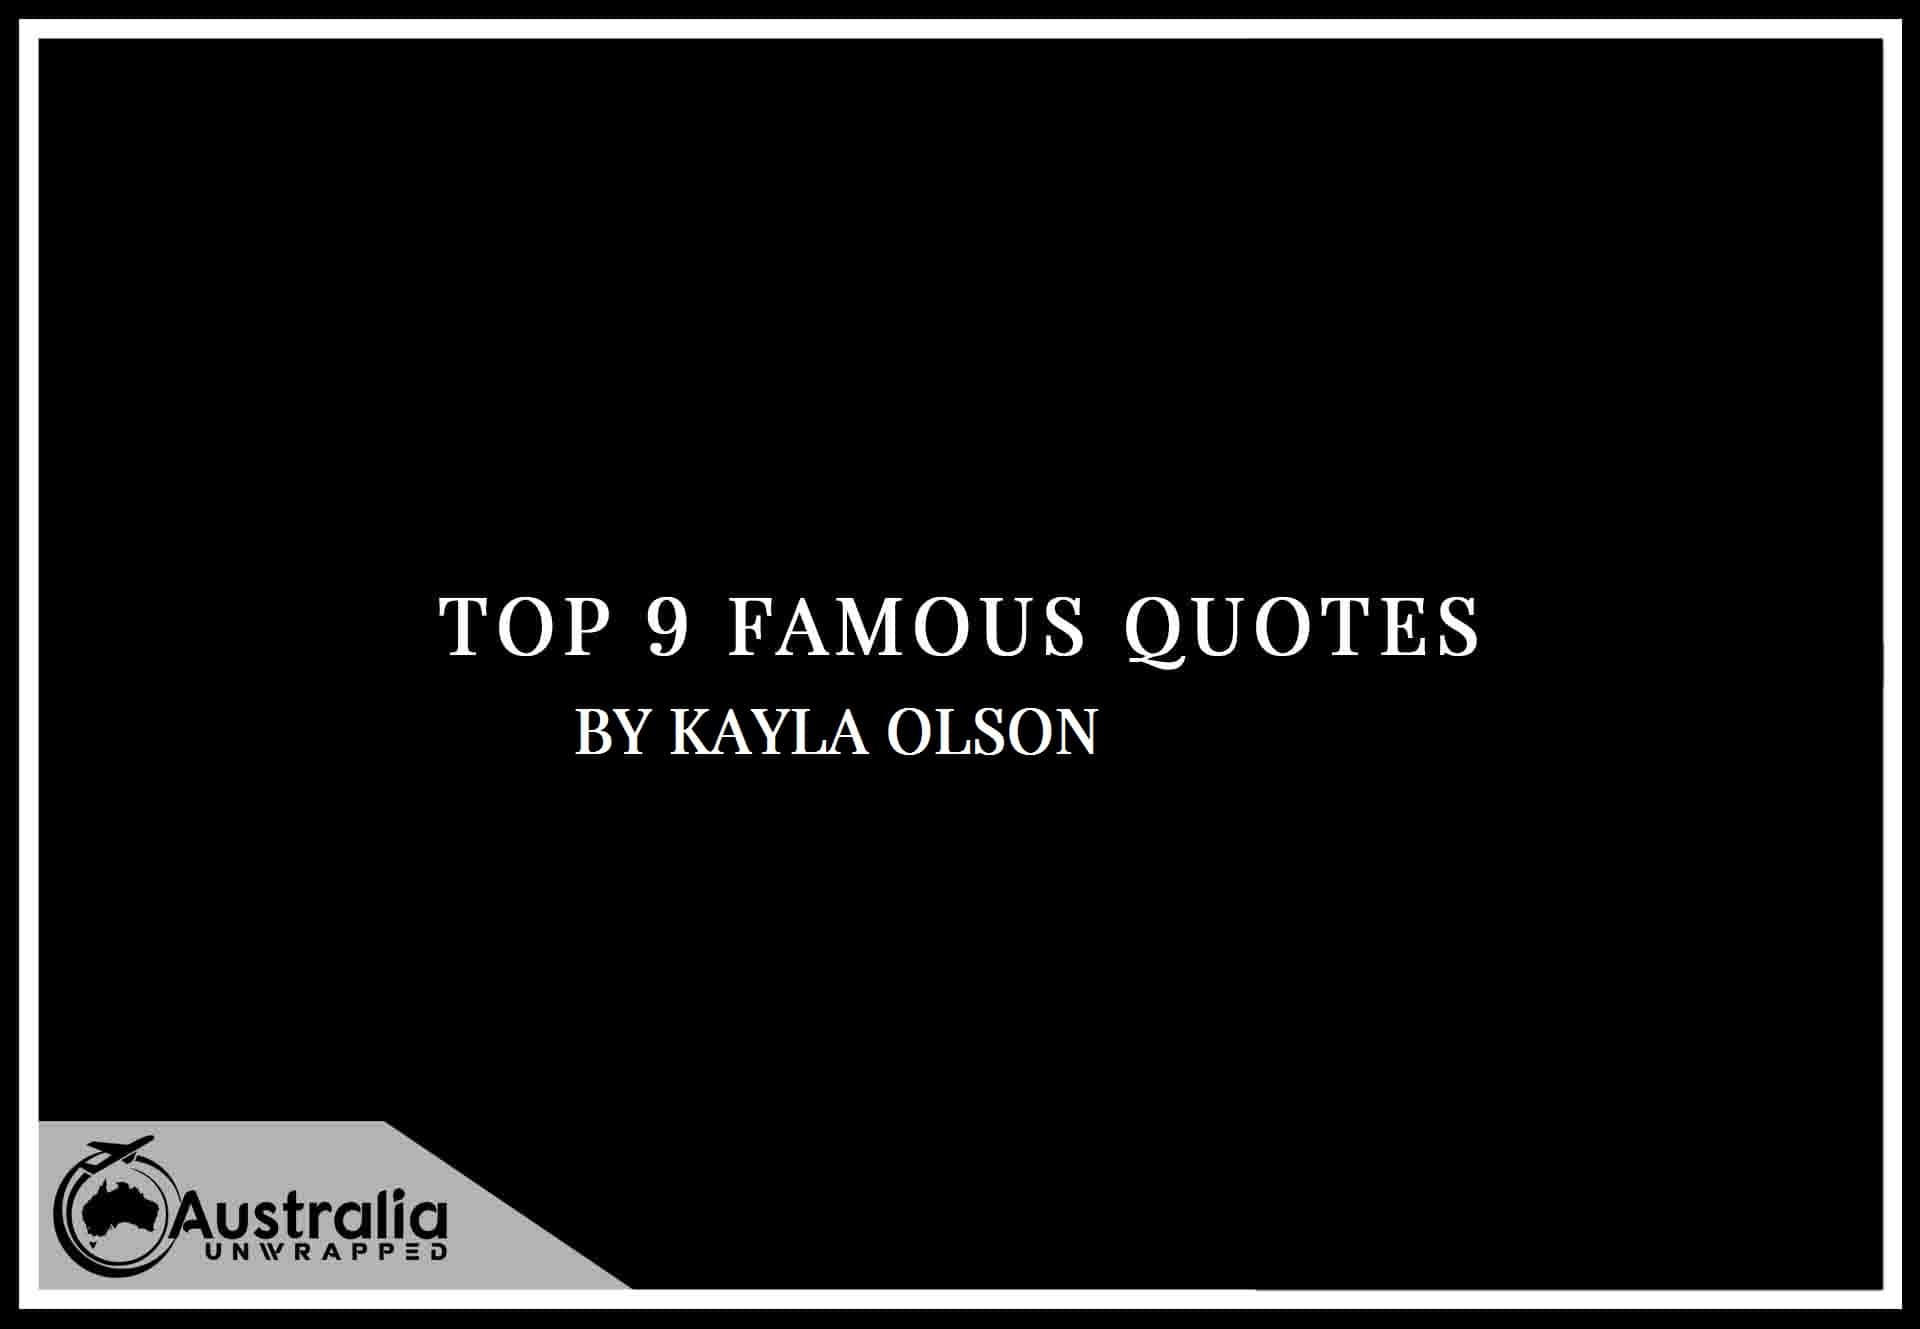 Kayla Olson's Top 9 Popular and Famous Quotes